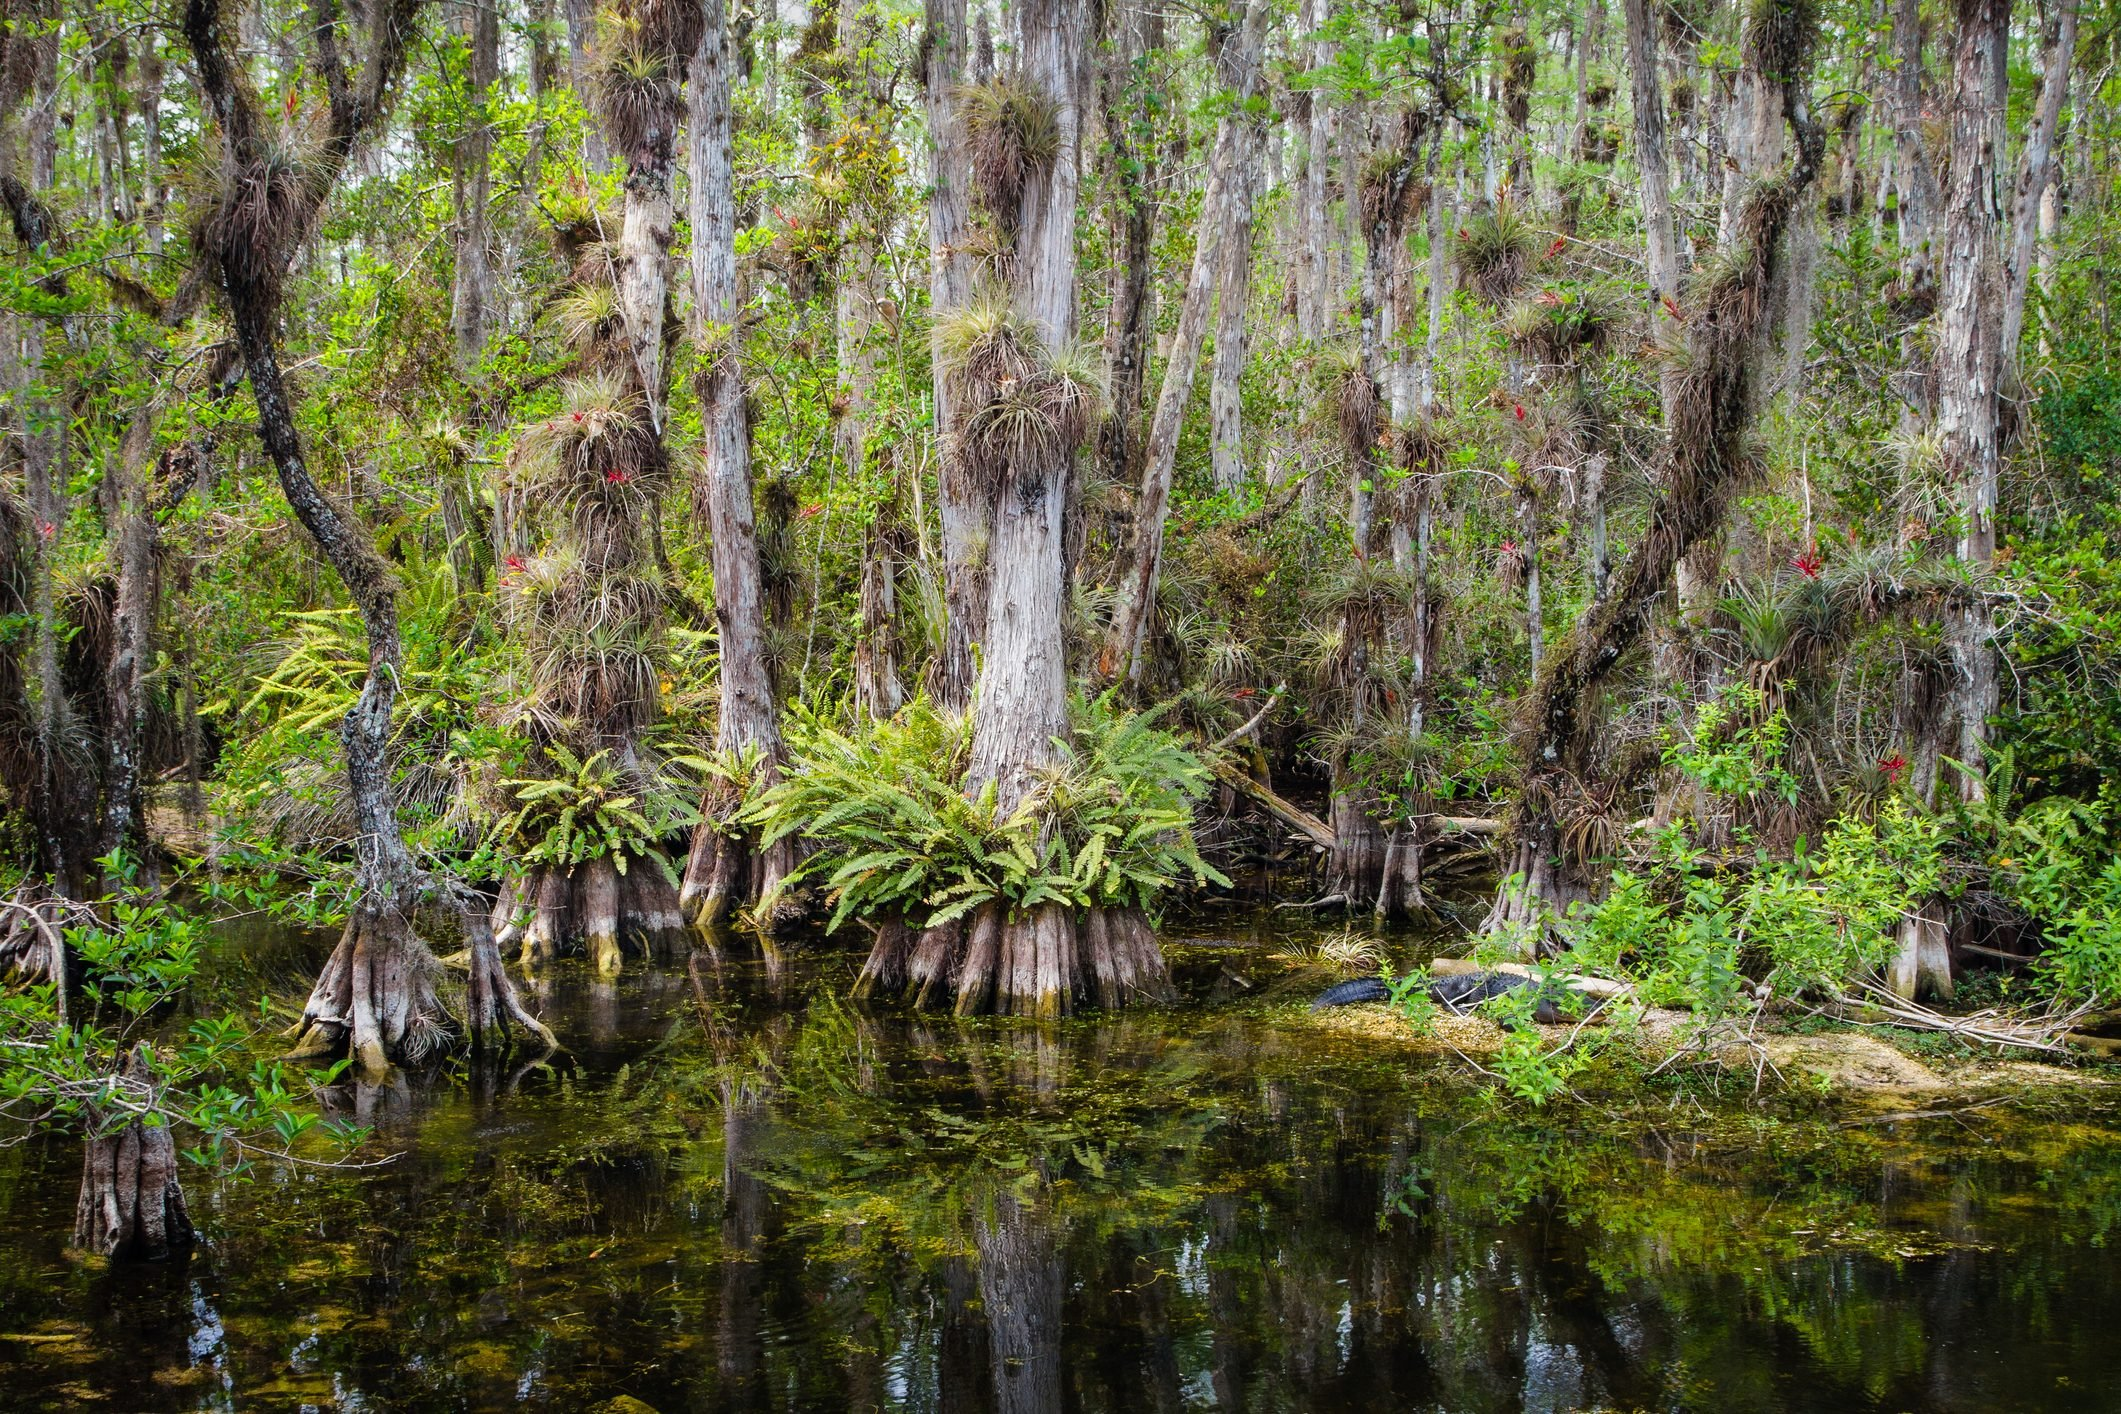 Everglades Tropical Cypress Swamp Landscape Showing Trees, Air Plants, and Ferns of the Swamp reflecting in Blackwater